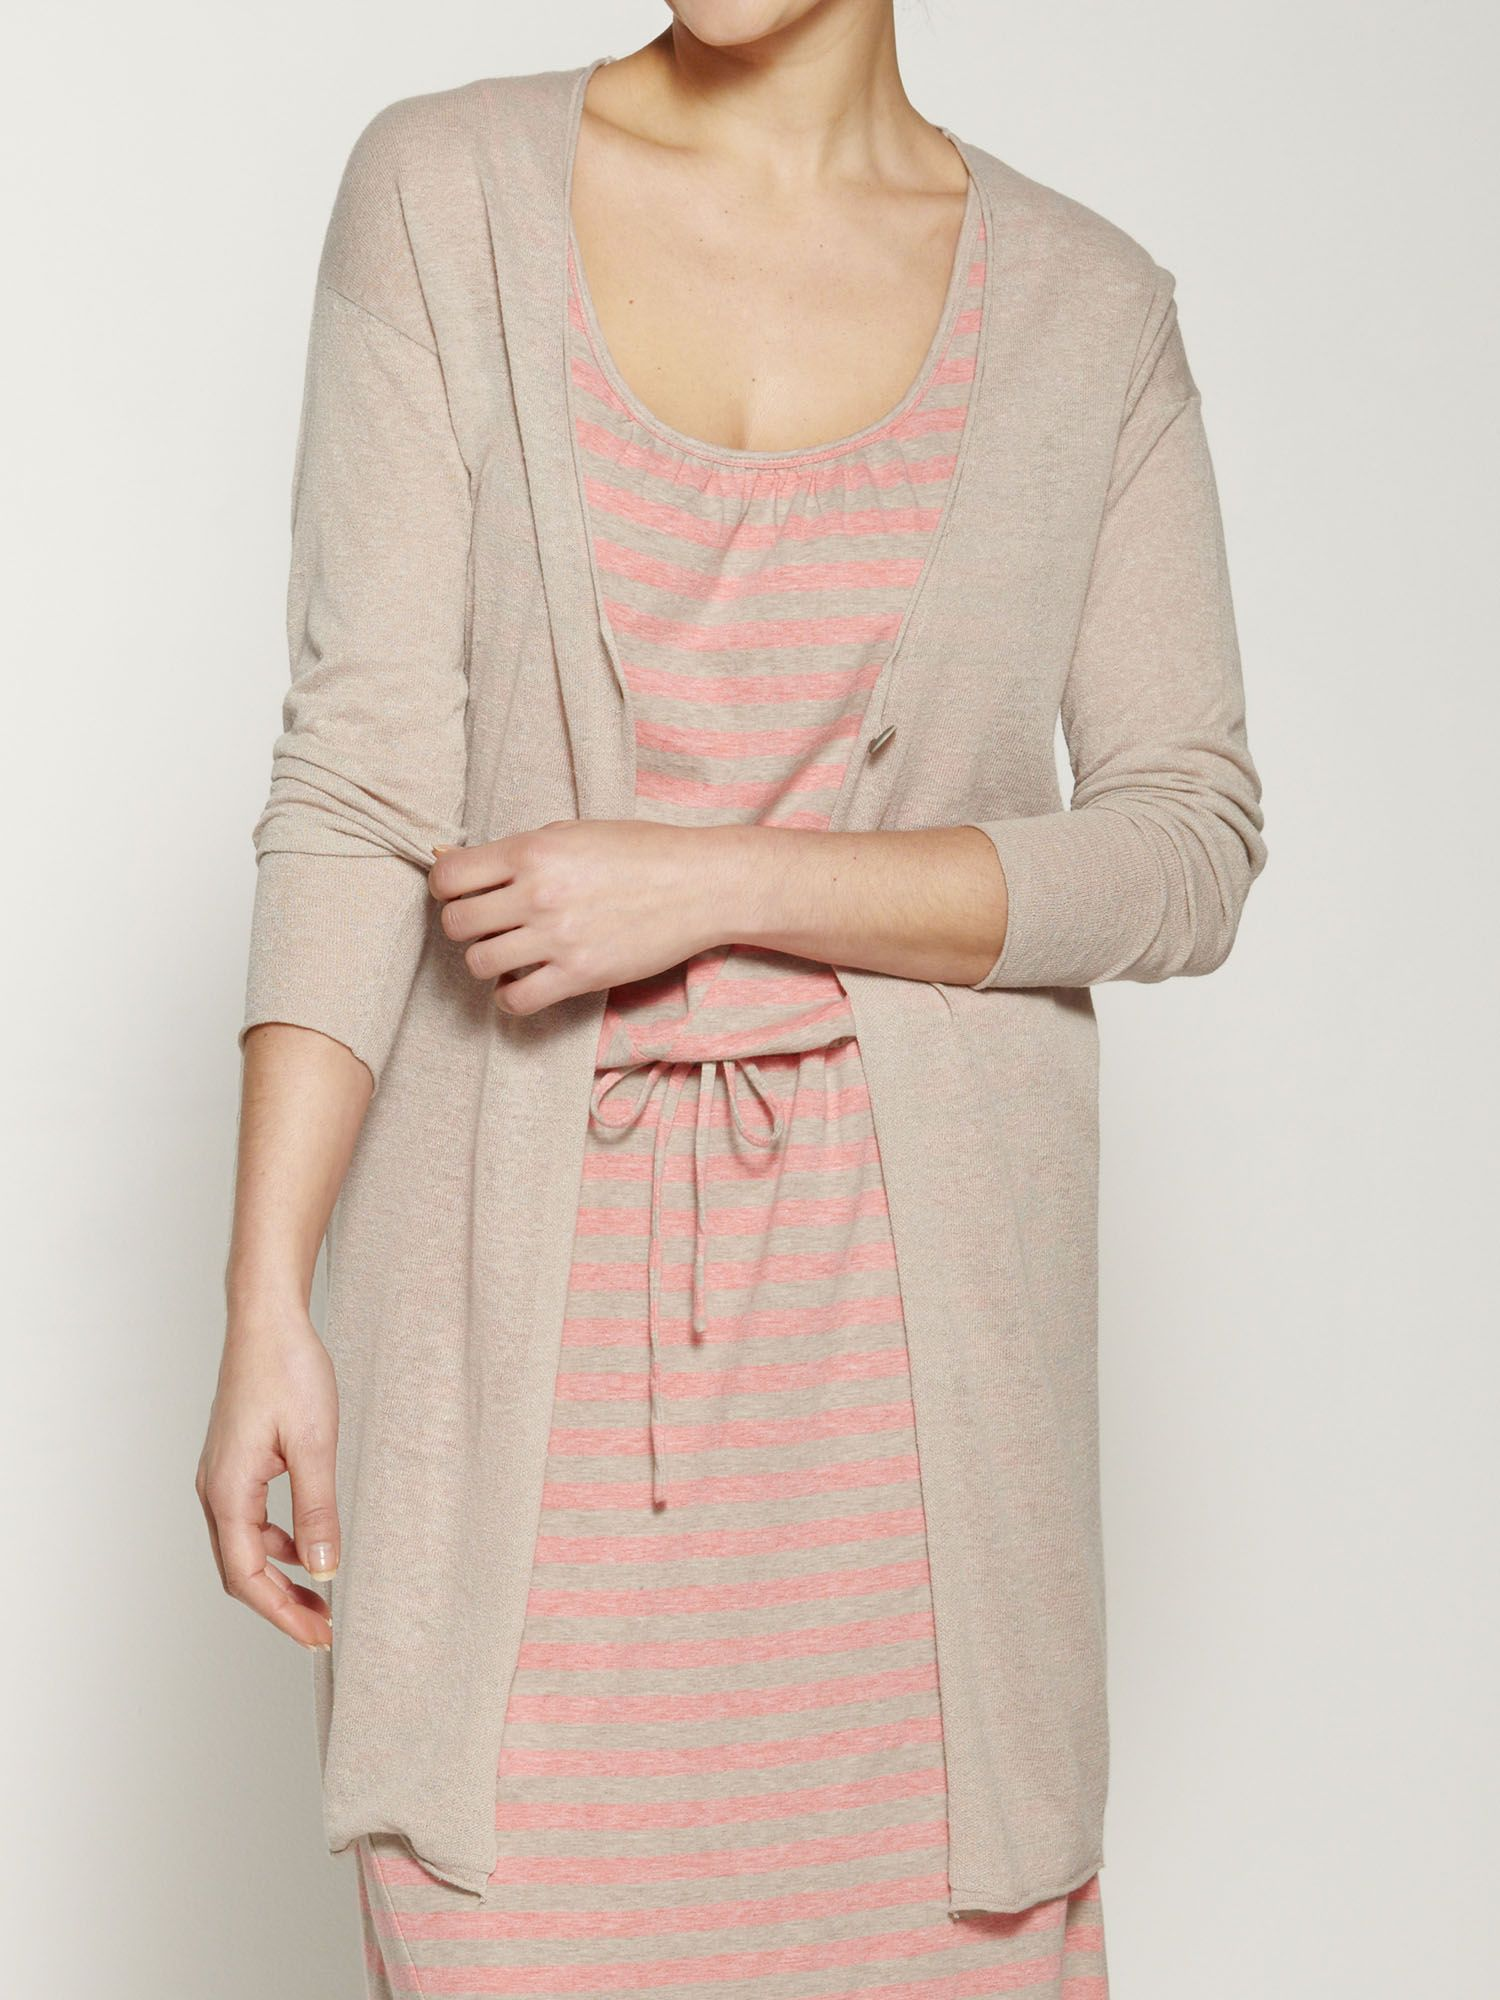 Lightweight linen mix cardigan